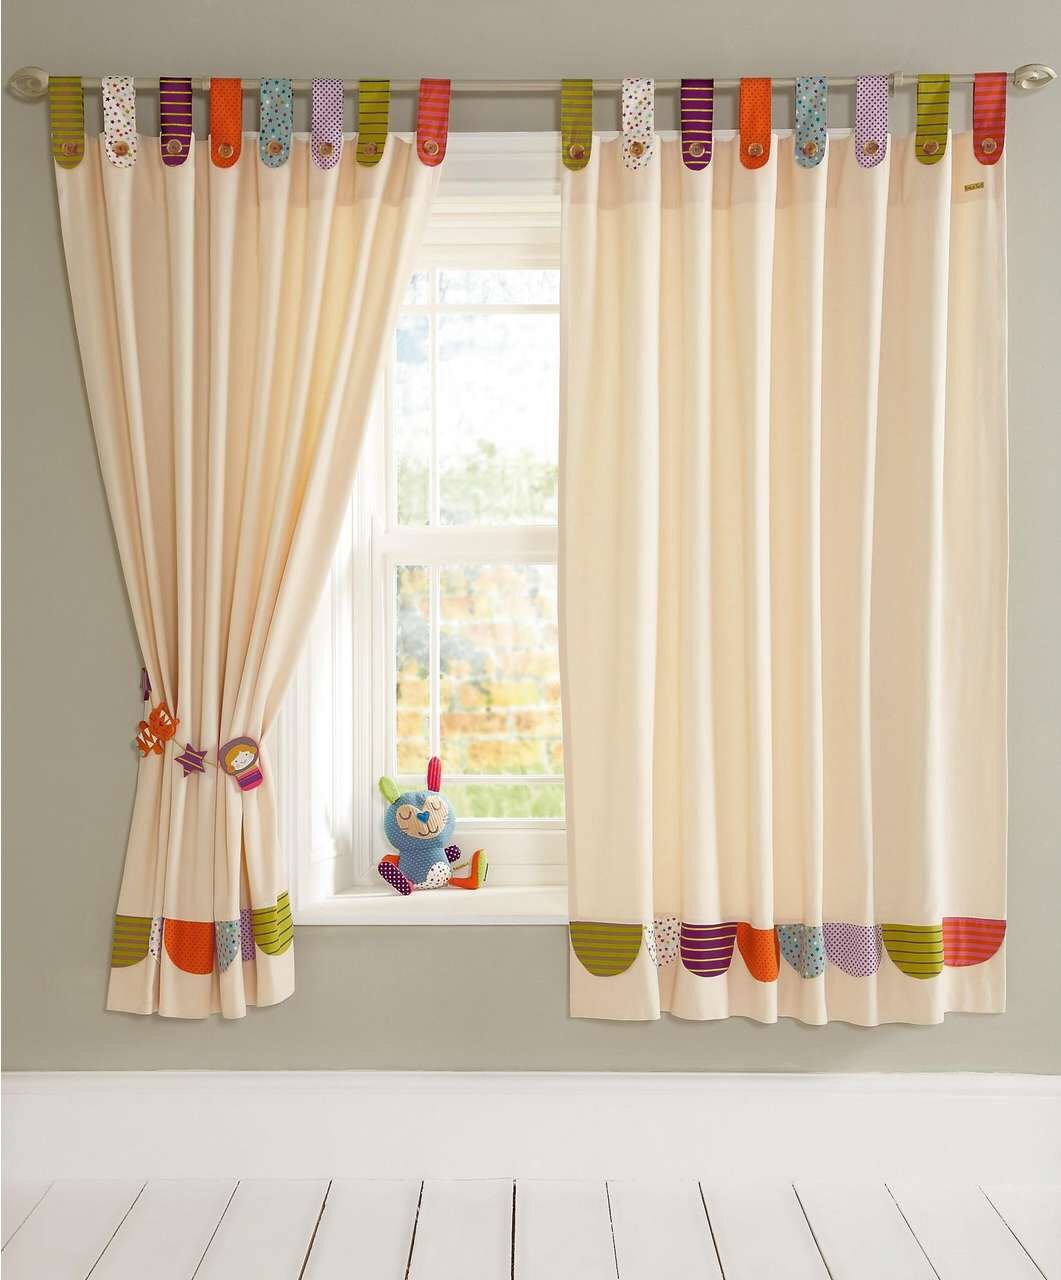 Colourful Tab Top Curtains For Kids Bedroom And Nursery | Baby Room Curtains, Kids Curtains, Boys Bedroom Curtains